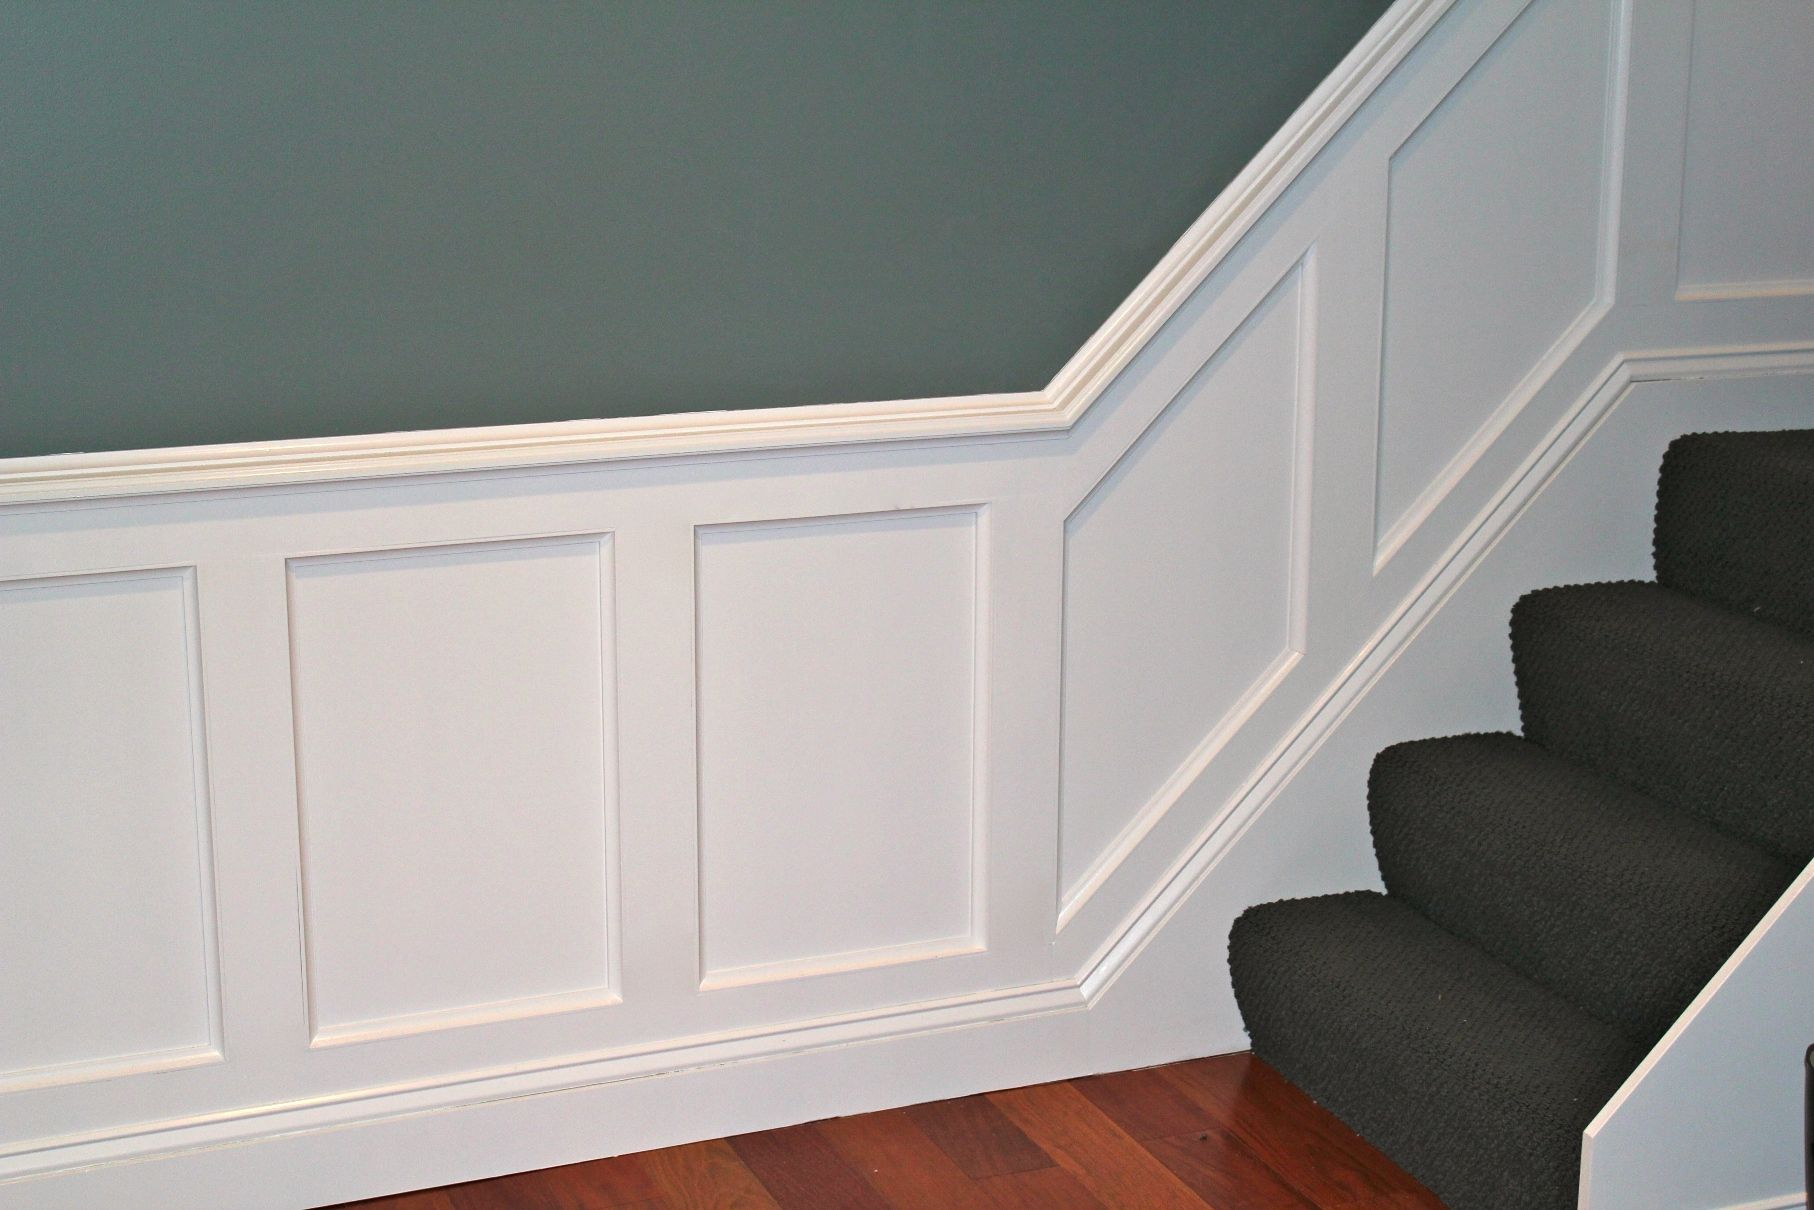 Wainscoting Installations Ranging From Simple Beaded Or Other Decorative Profile Boards Set Between Baseboard And Chair Wainscoting Panels Wainscoting Styles Beadboard Wainscoting